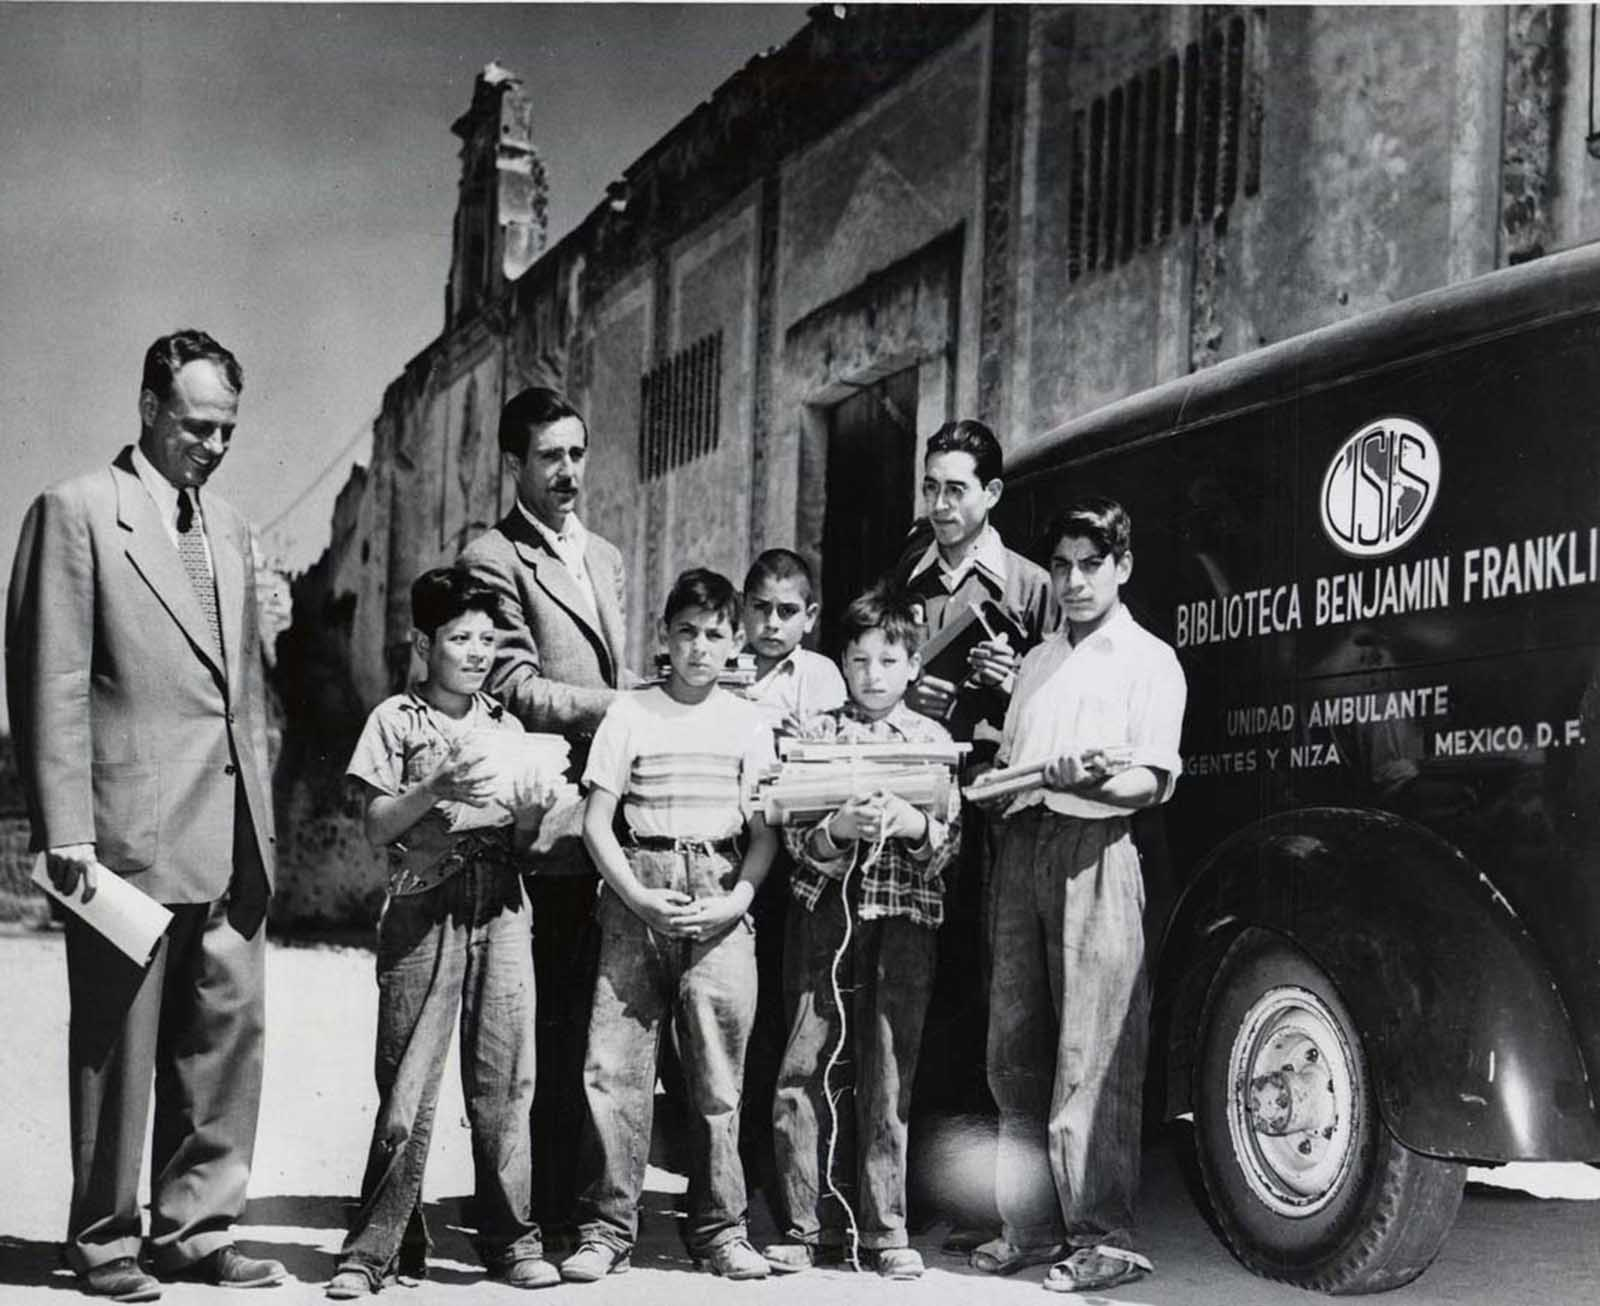 The Benjamin Franklin bookmobile, Mexico City, 1953.